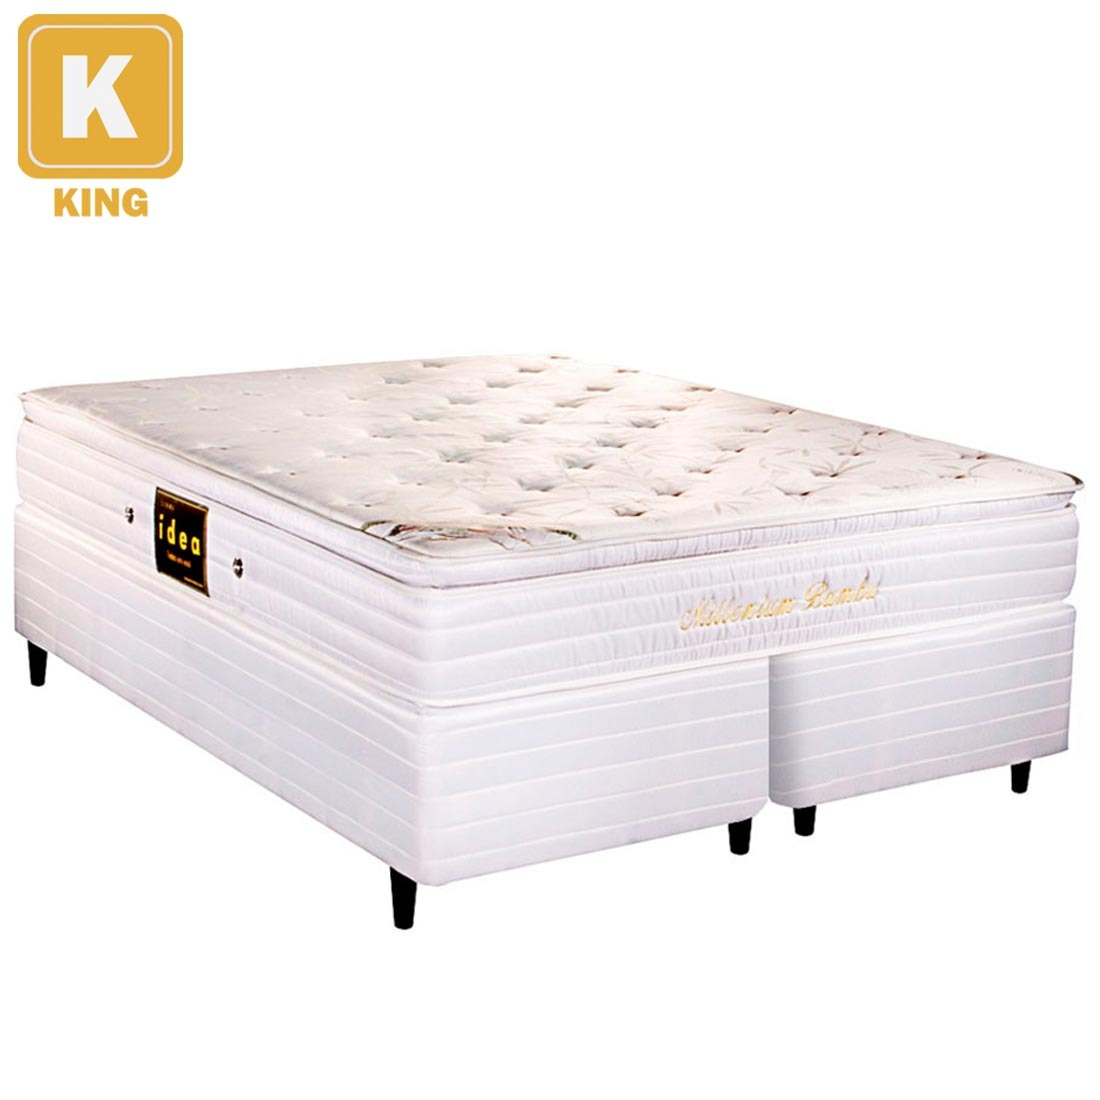 Cama box king size herval colch o mola ensacada r 1 for Cama queen size or king size